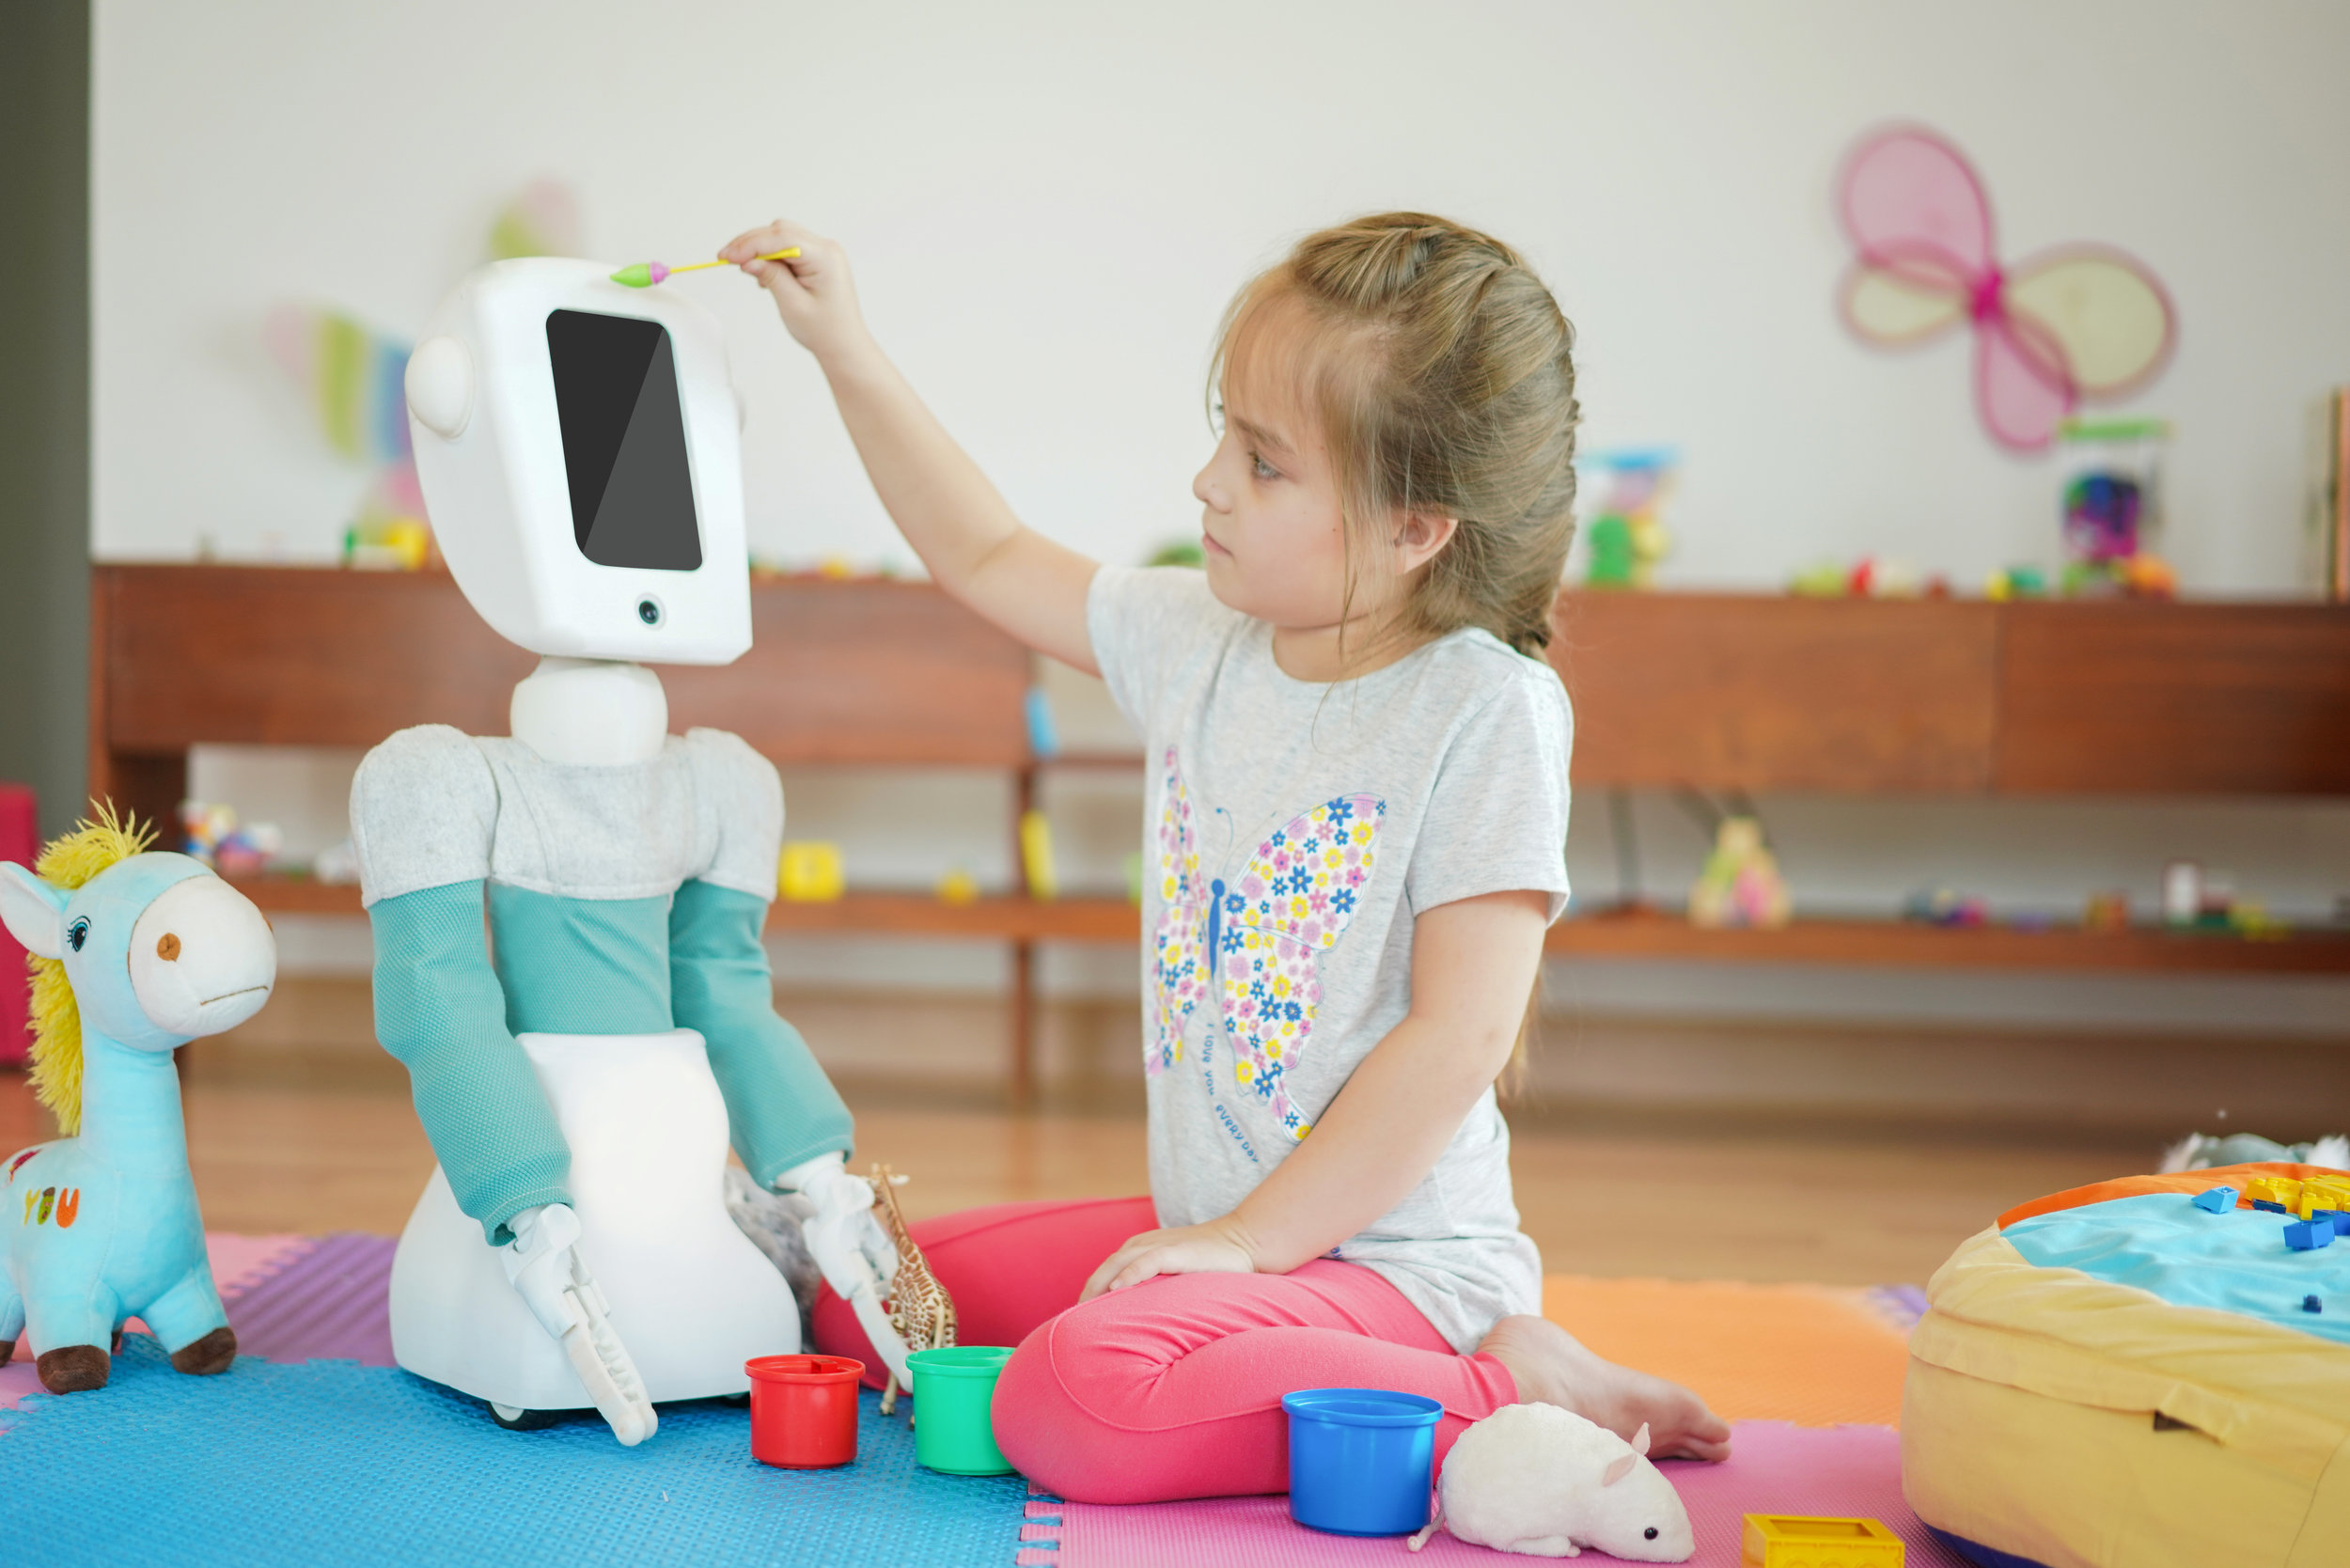 Purchase Cushybot Robot - 1- Place the robot in the place where you would like to play with the child.2- To setup the robot, simply turn it on and connect to the WiFi.